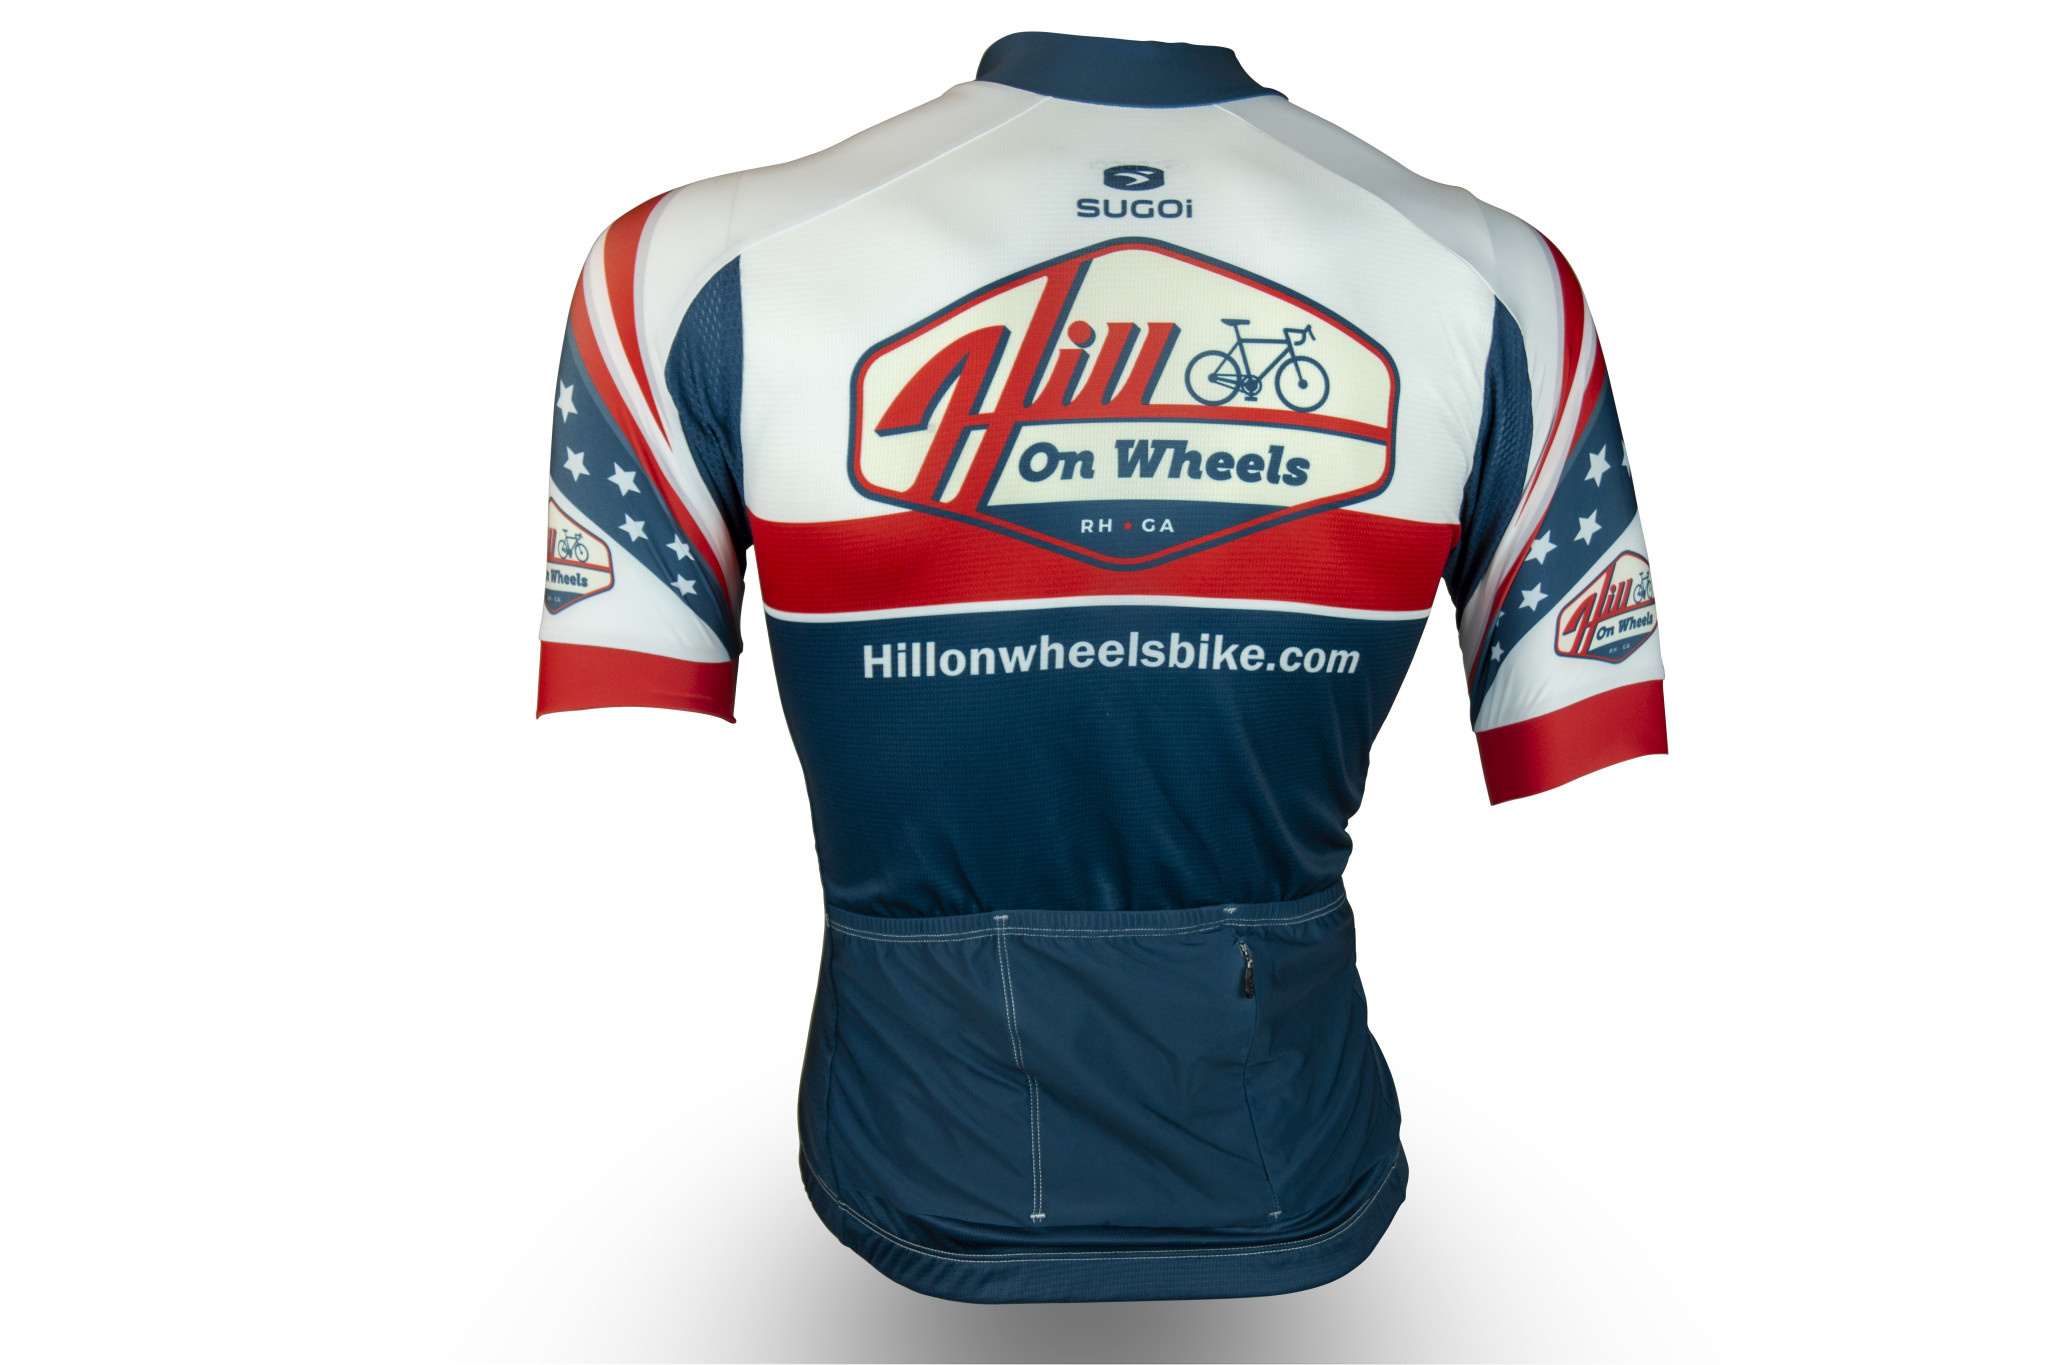 SUGOI HOW EVOLUTION MEN'S JERSEY